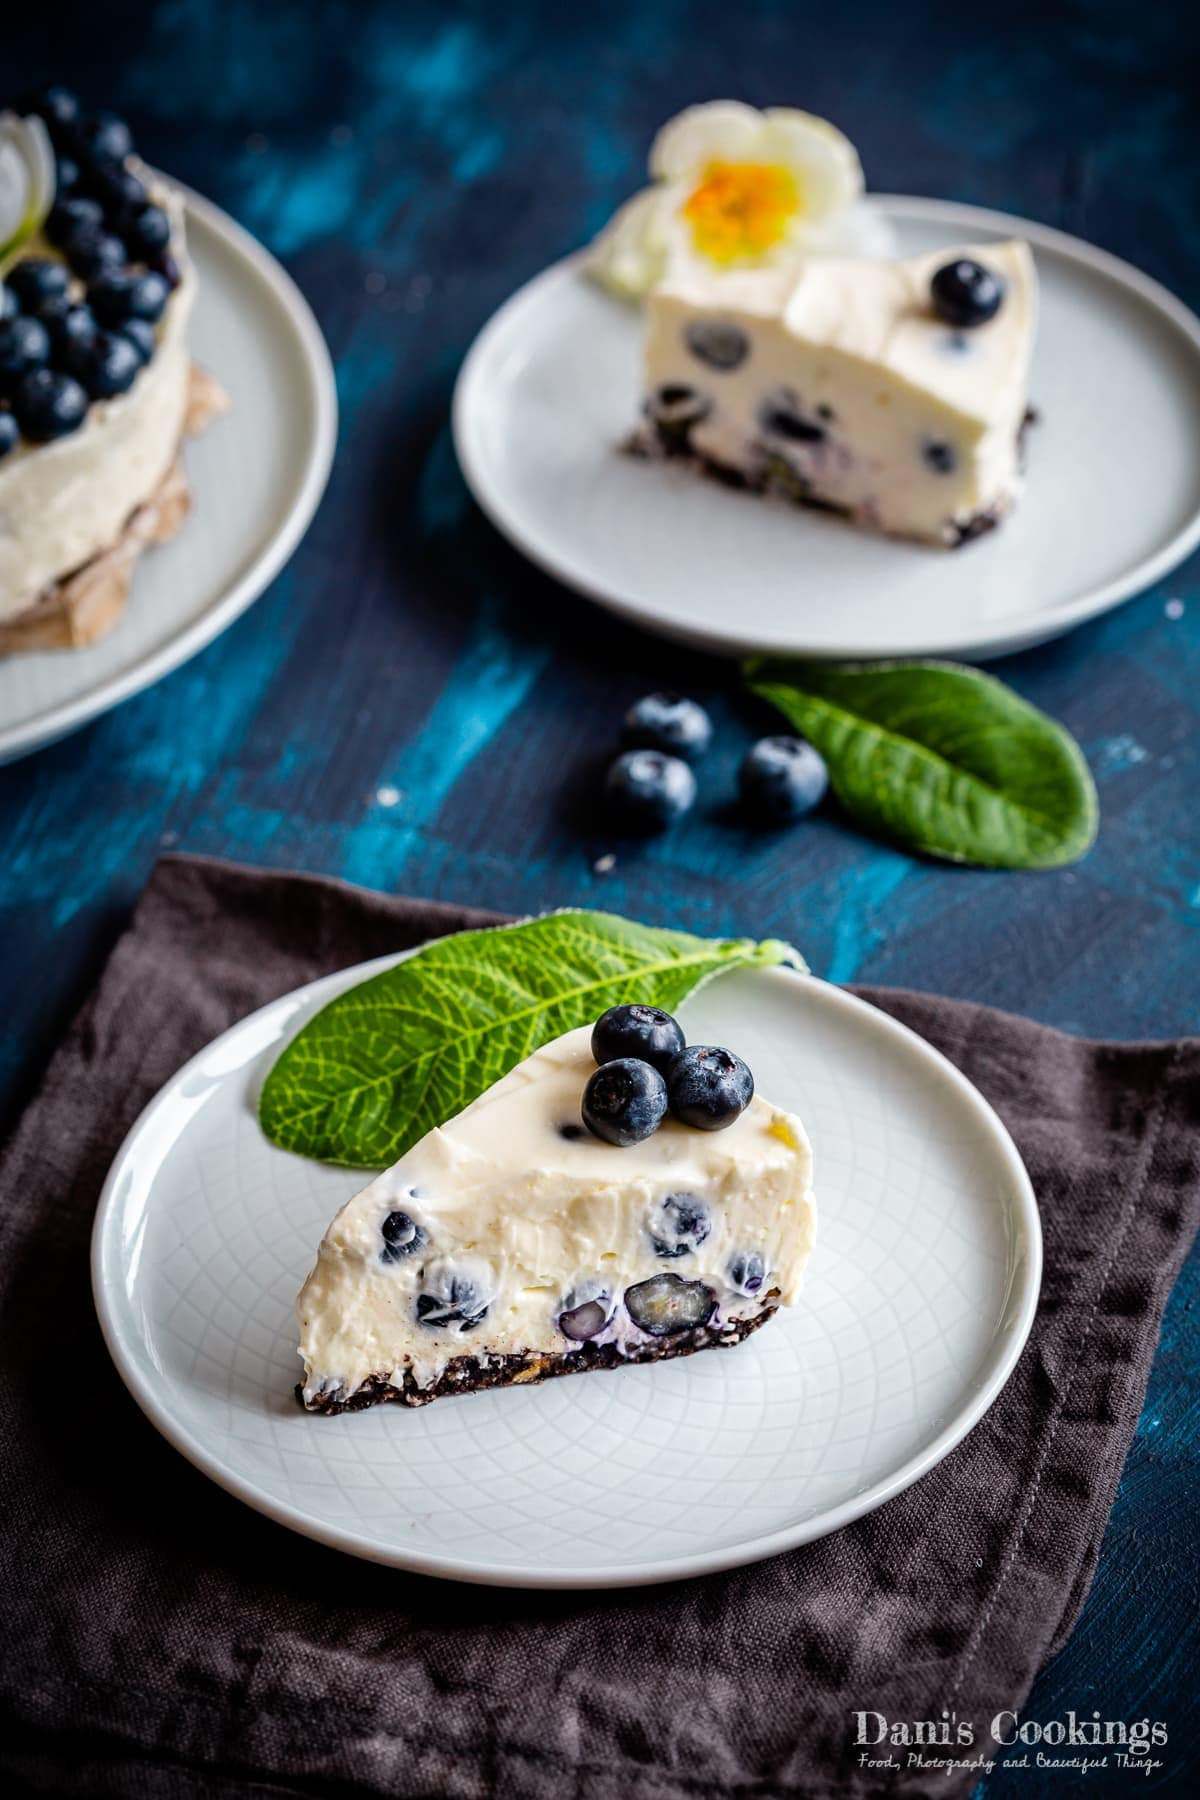 a slice of blueberry cheesecake with another one aside